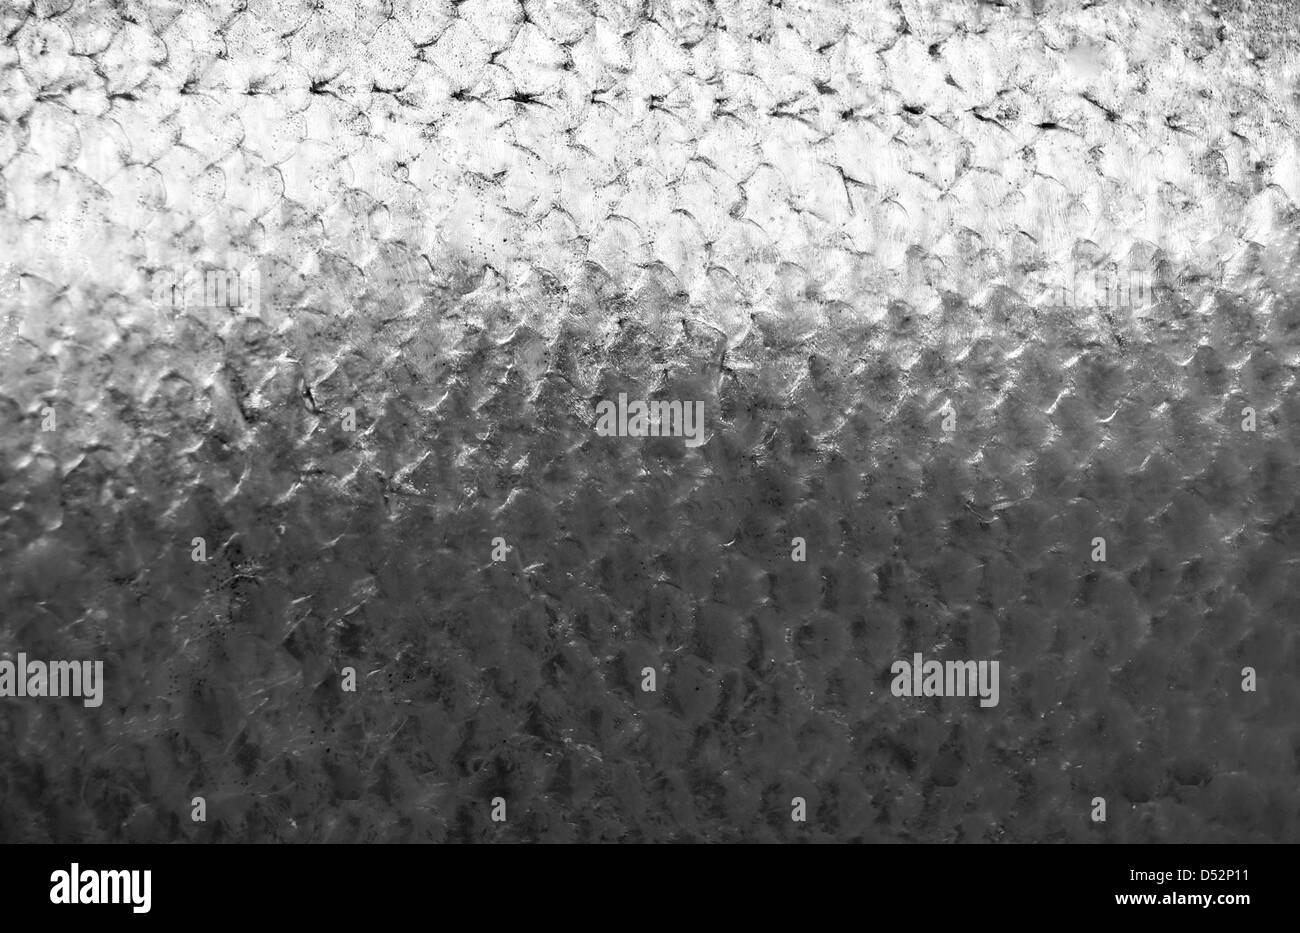 Salmon fish scales grunge texture back ground Stock Photo